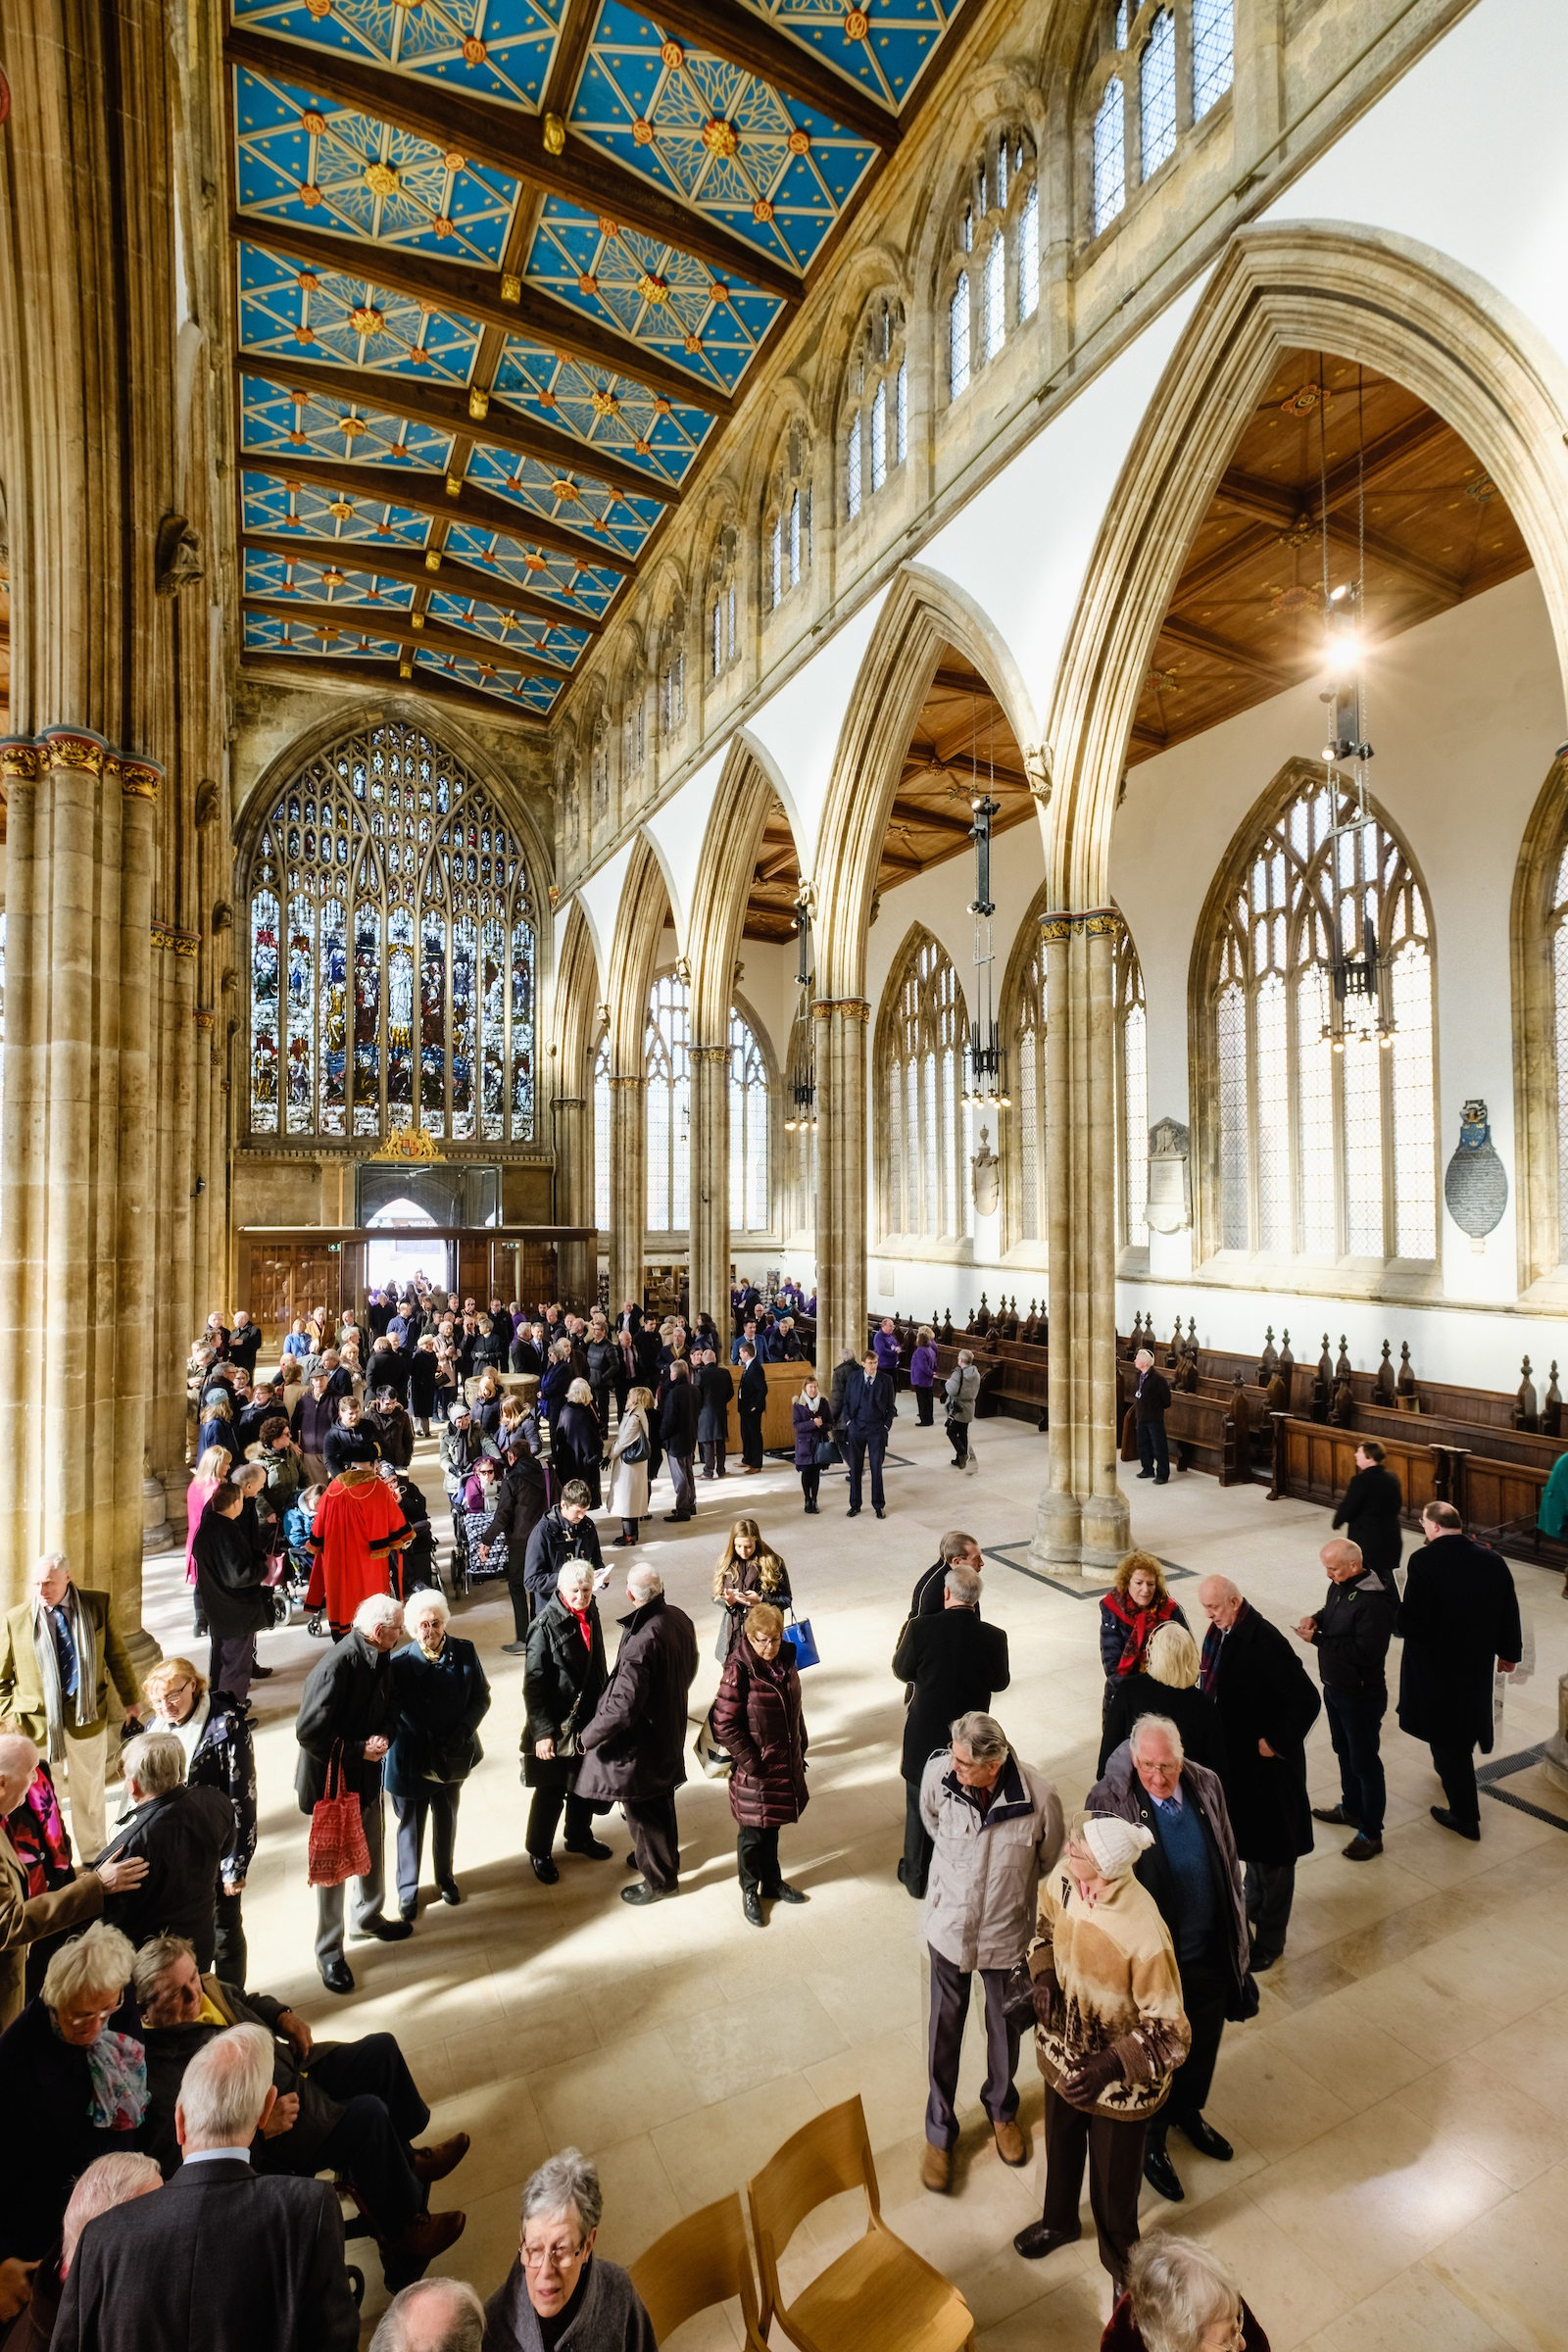 Guests enjoy the space and light within Hull Minster's Nave, now cleared of the crowded pews introduced by the Victorians.